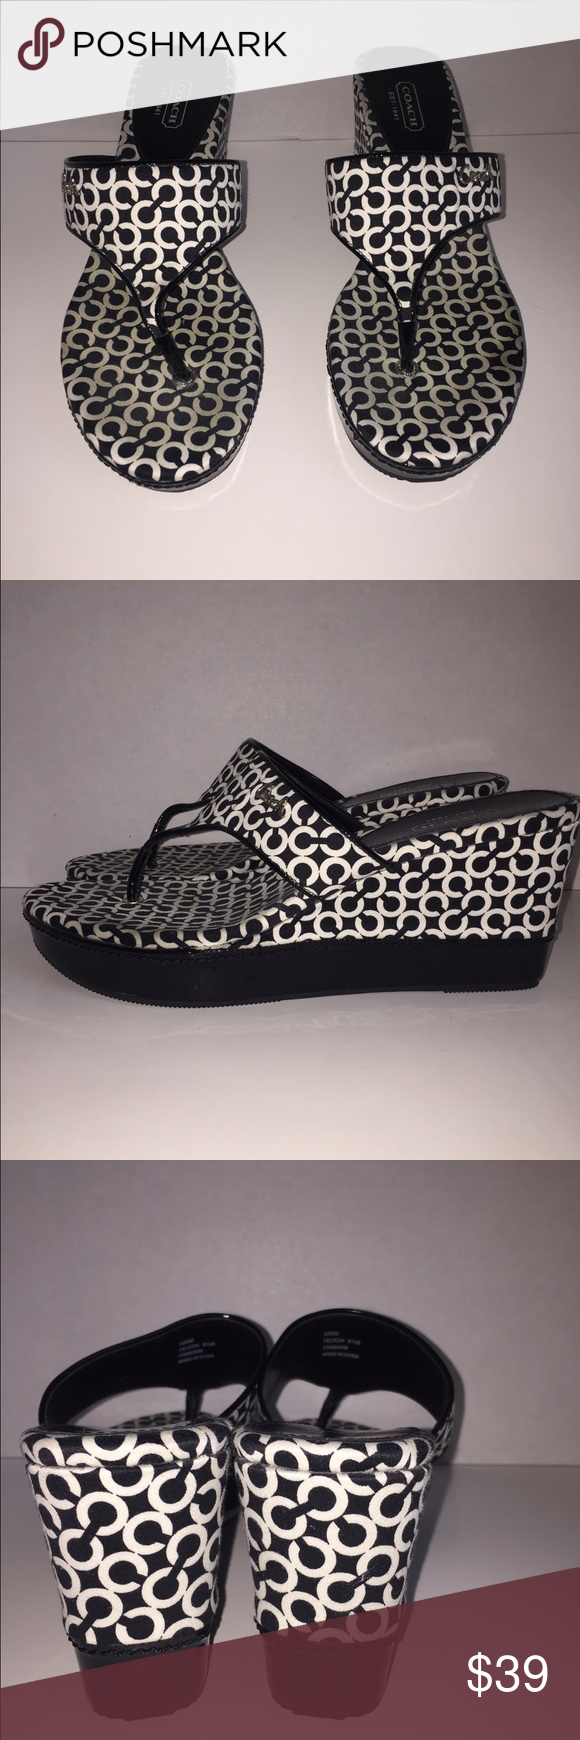 22208f53ae4c Coach Wedge Thong Sandals Felecia style. Excellent used condition. No holes  rips or stains. Smoke free and pet free home. Coach Shoes Wedges